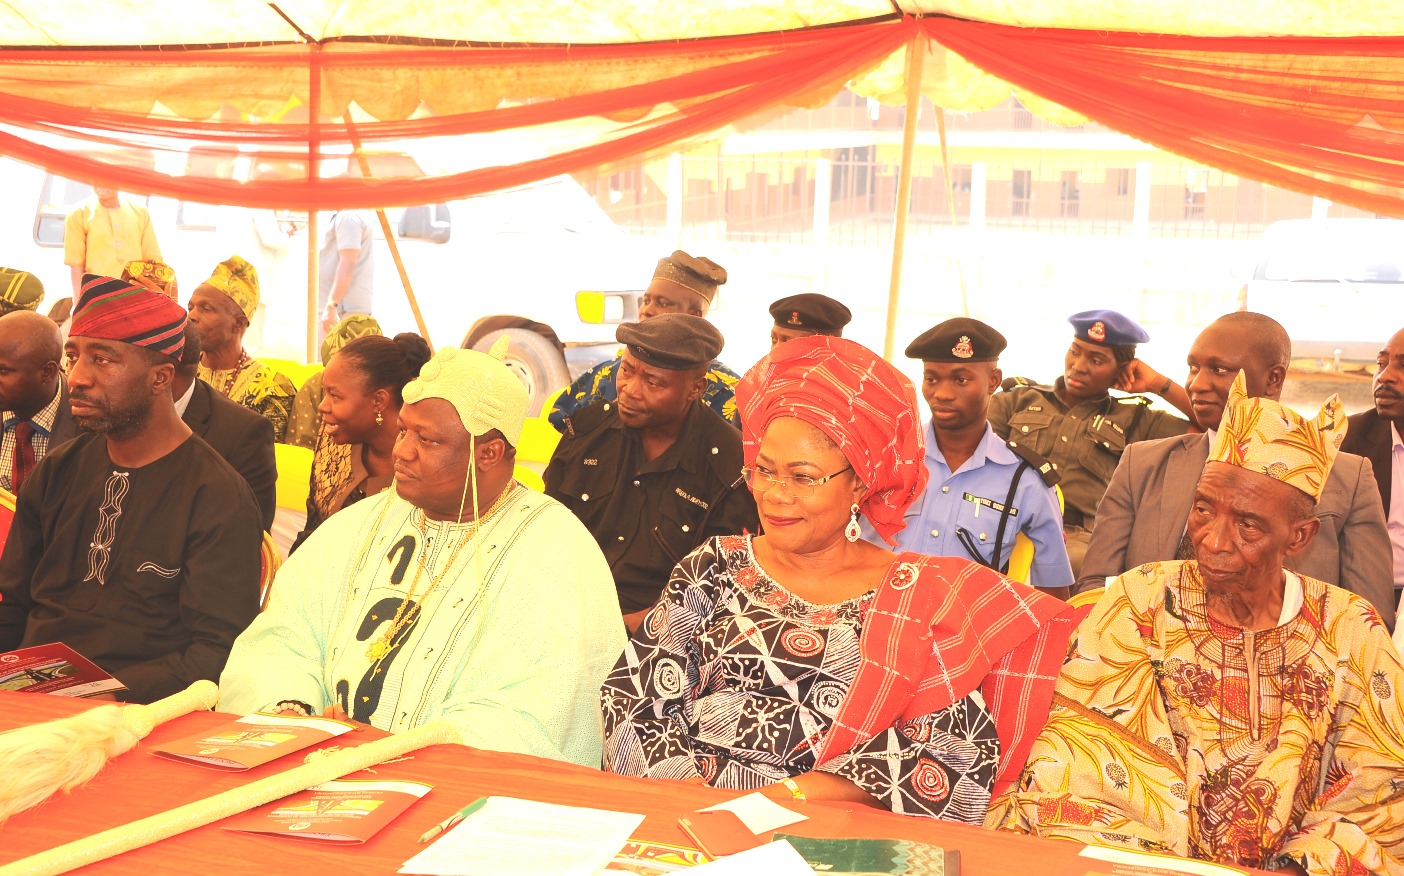 Governor State of Osun, Ogbeni Rauf Aregbesola, represented by his Deputy, Mrs Titi Laoye-Tomori (2nd right); Former Commissioner for Lands, Physical Planning and Urban Development, Architect Muyiwa Ige (left); the Ataoja of Osogbo, Oba Jimoh Olanipekun (2nd left) and wife of the Baale of Isale-Osun, Chief Saliu Moniade, during the Payment of Compensation to the people affected by the reconstruction of Orita Olaiya, Asubiaro, Isale-Osun and Ita Olookan Road, Osogbo, at Laro-Timehin Middle School Isale Osun on Wednesday 16-12-2015